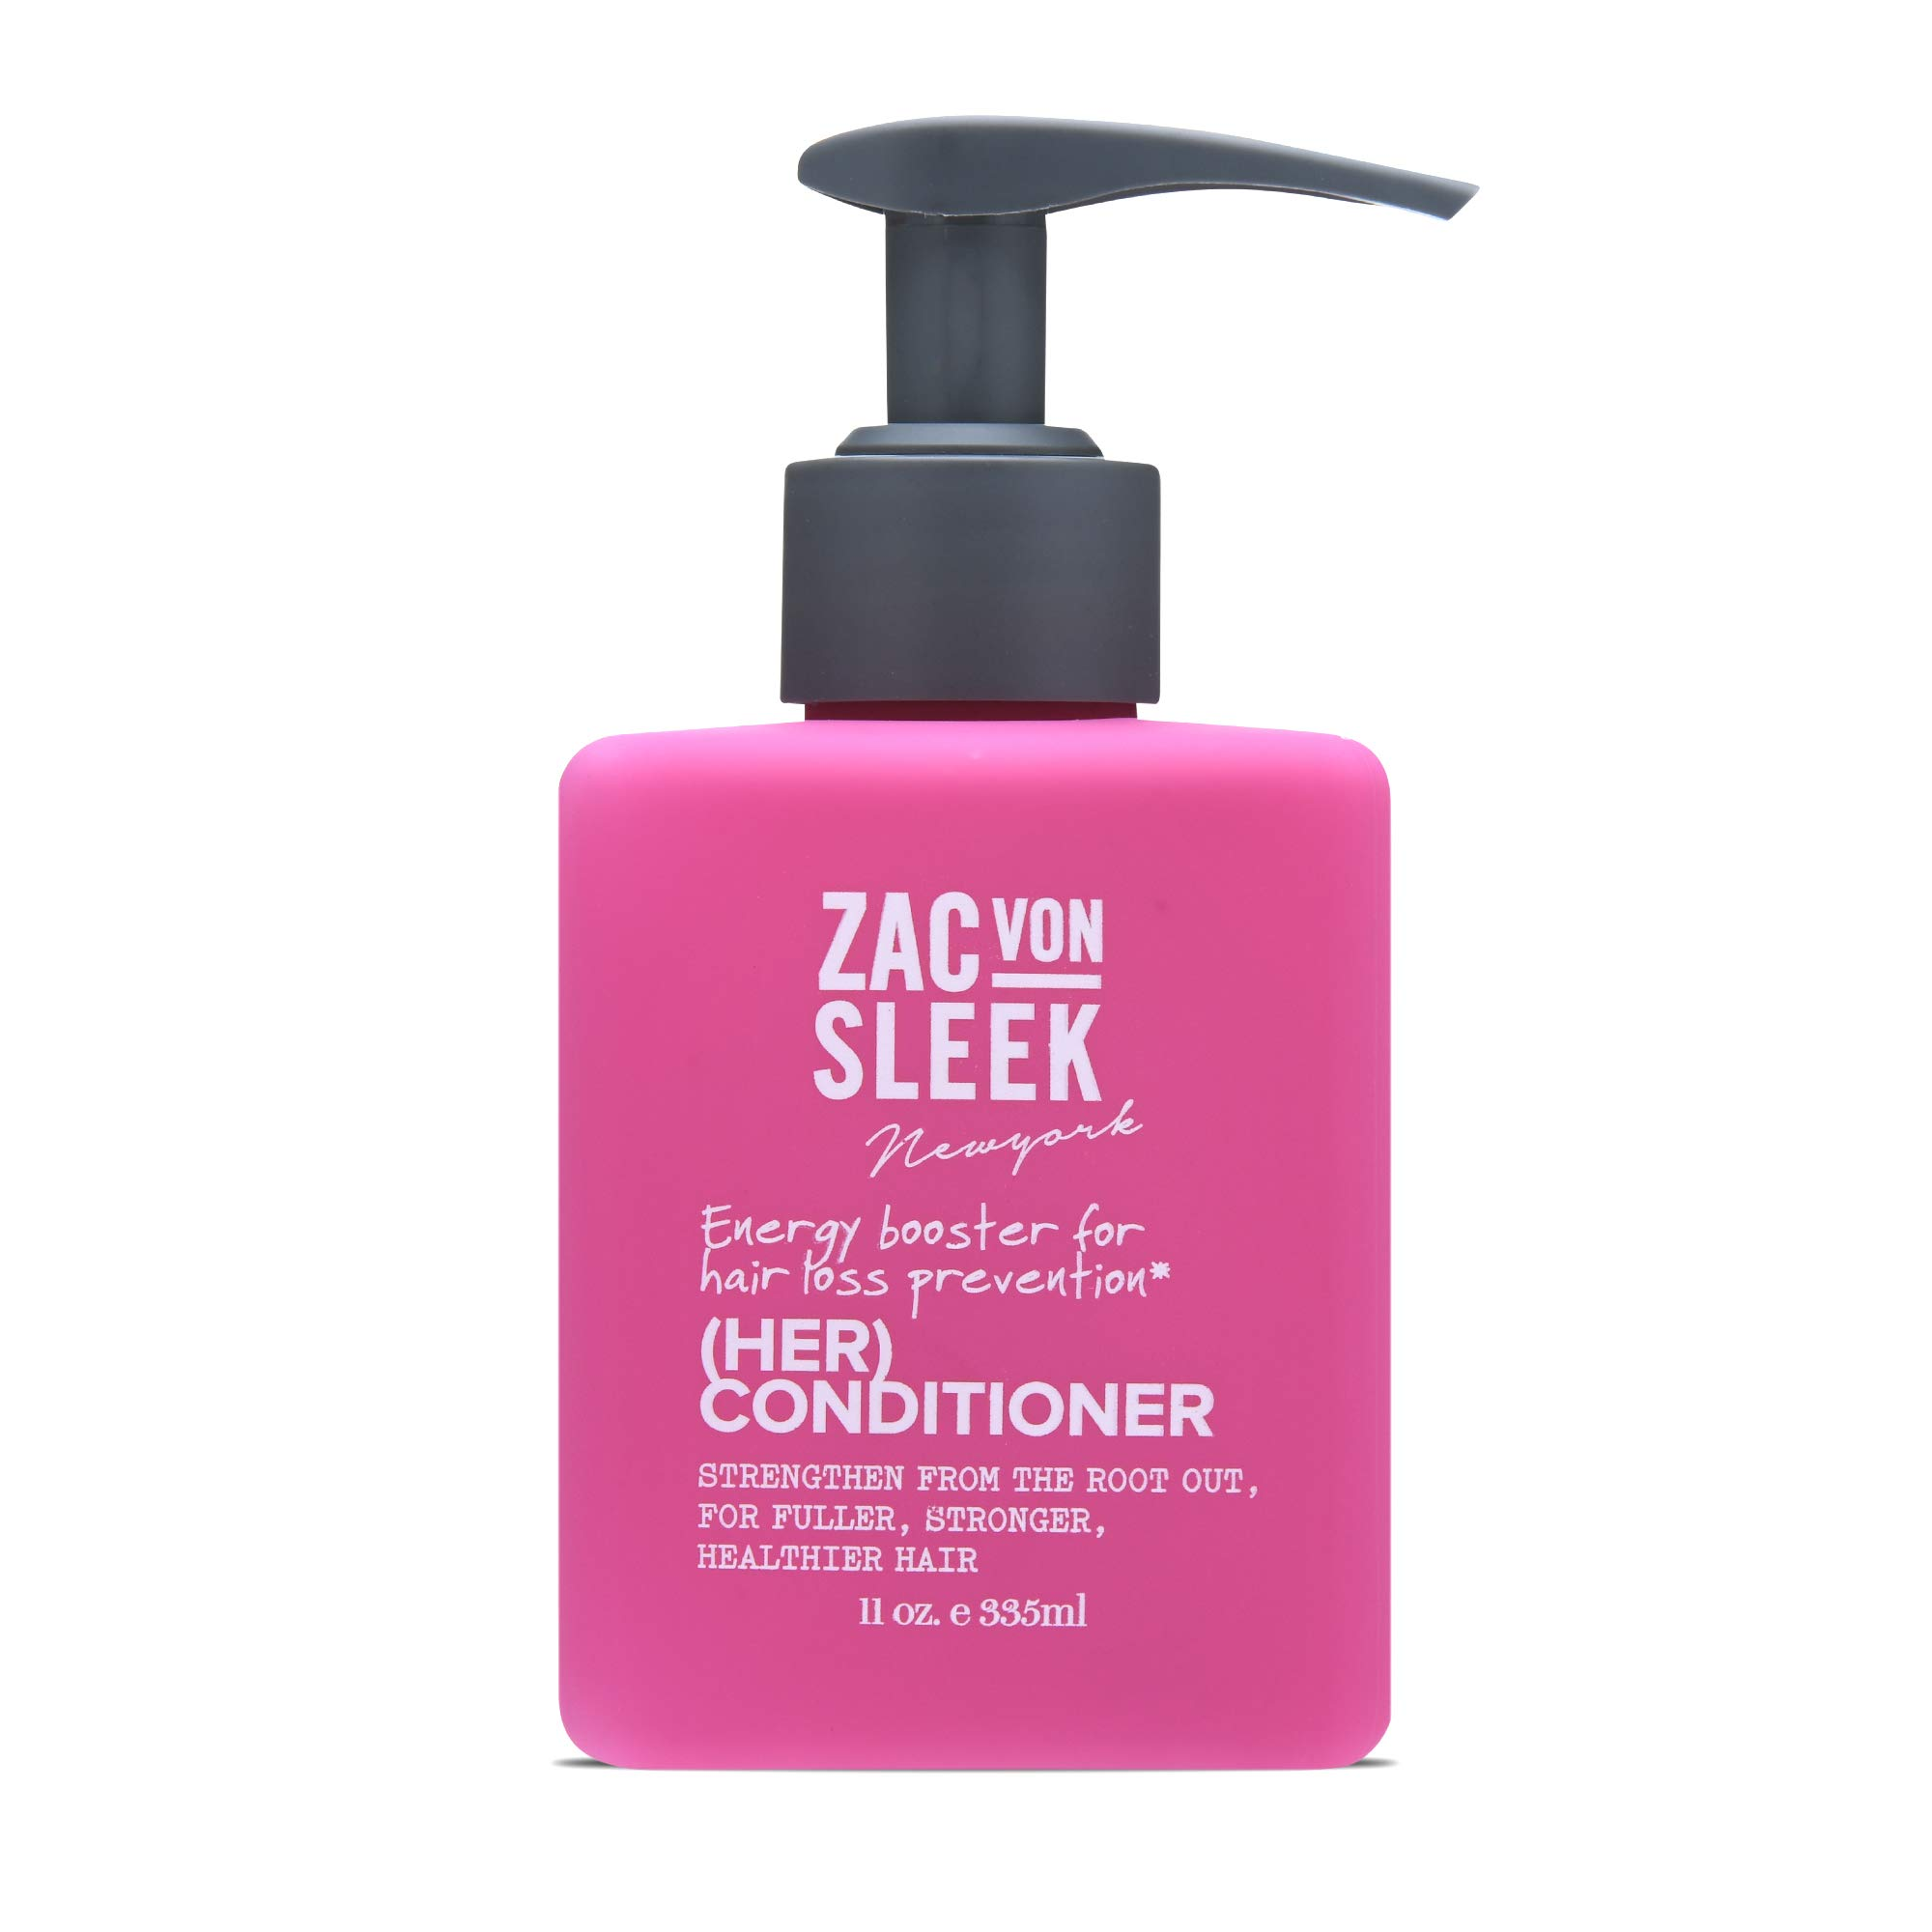 (Her) Conditioner - Hair loss prevention conditioner for women with all type of hair ... by Zac Von Sleek